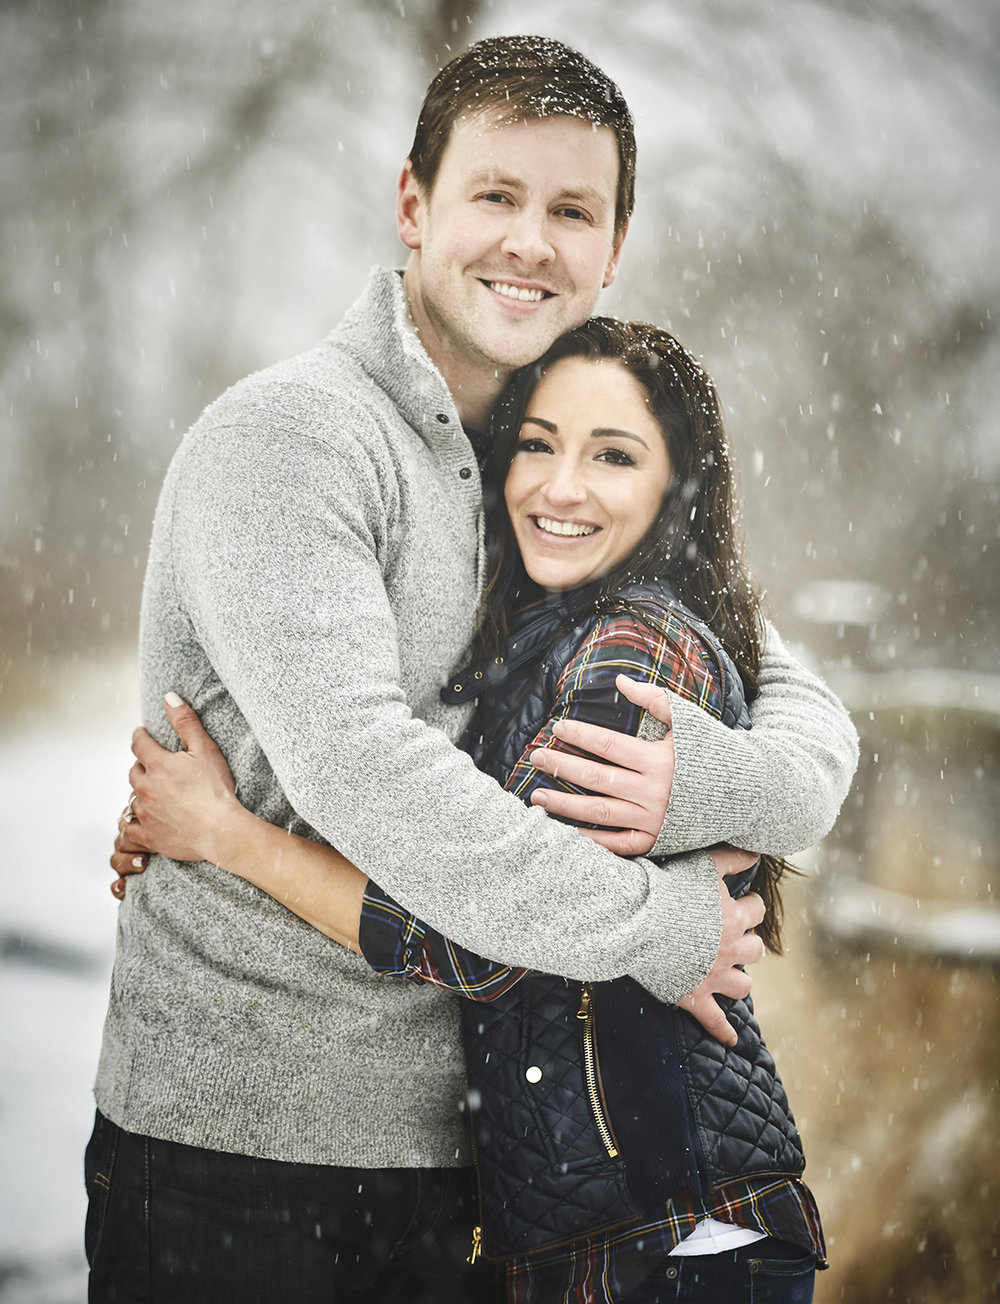 170114_LibertyStateParkEngagement_WinterEngagementPhotography_By_BriJohnsonWeddings0014.jpg